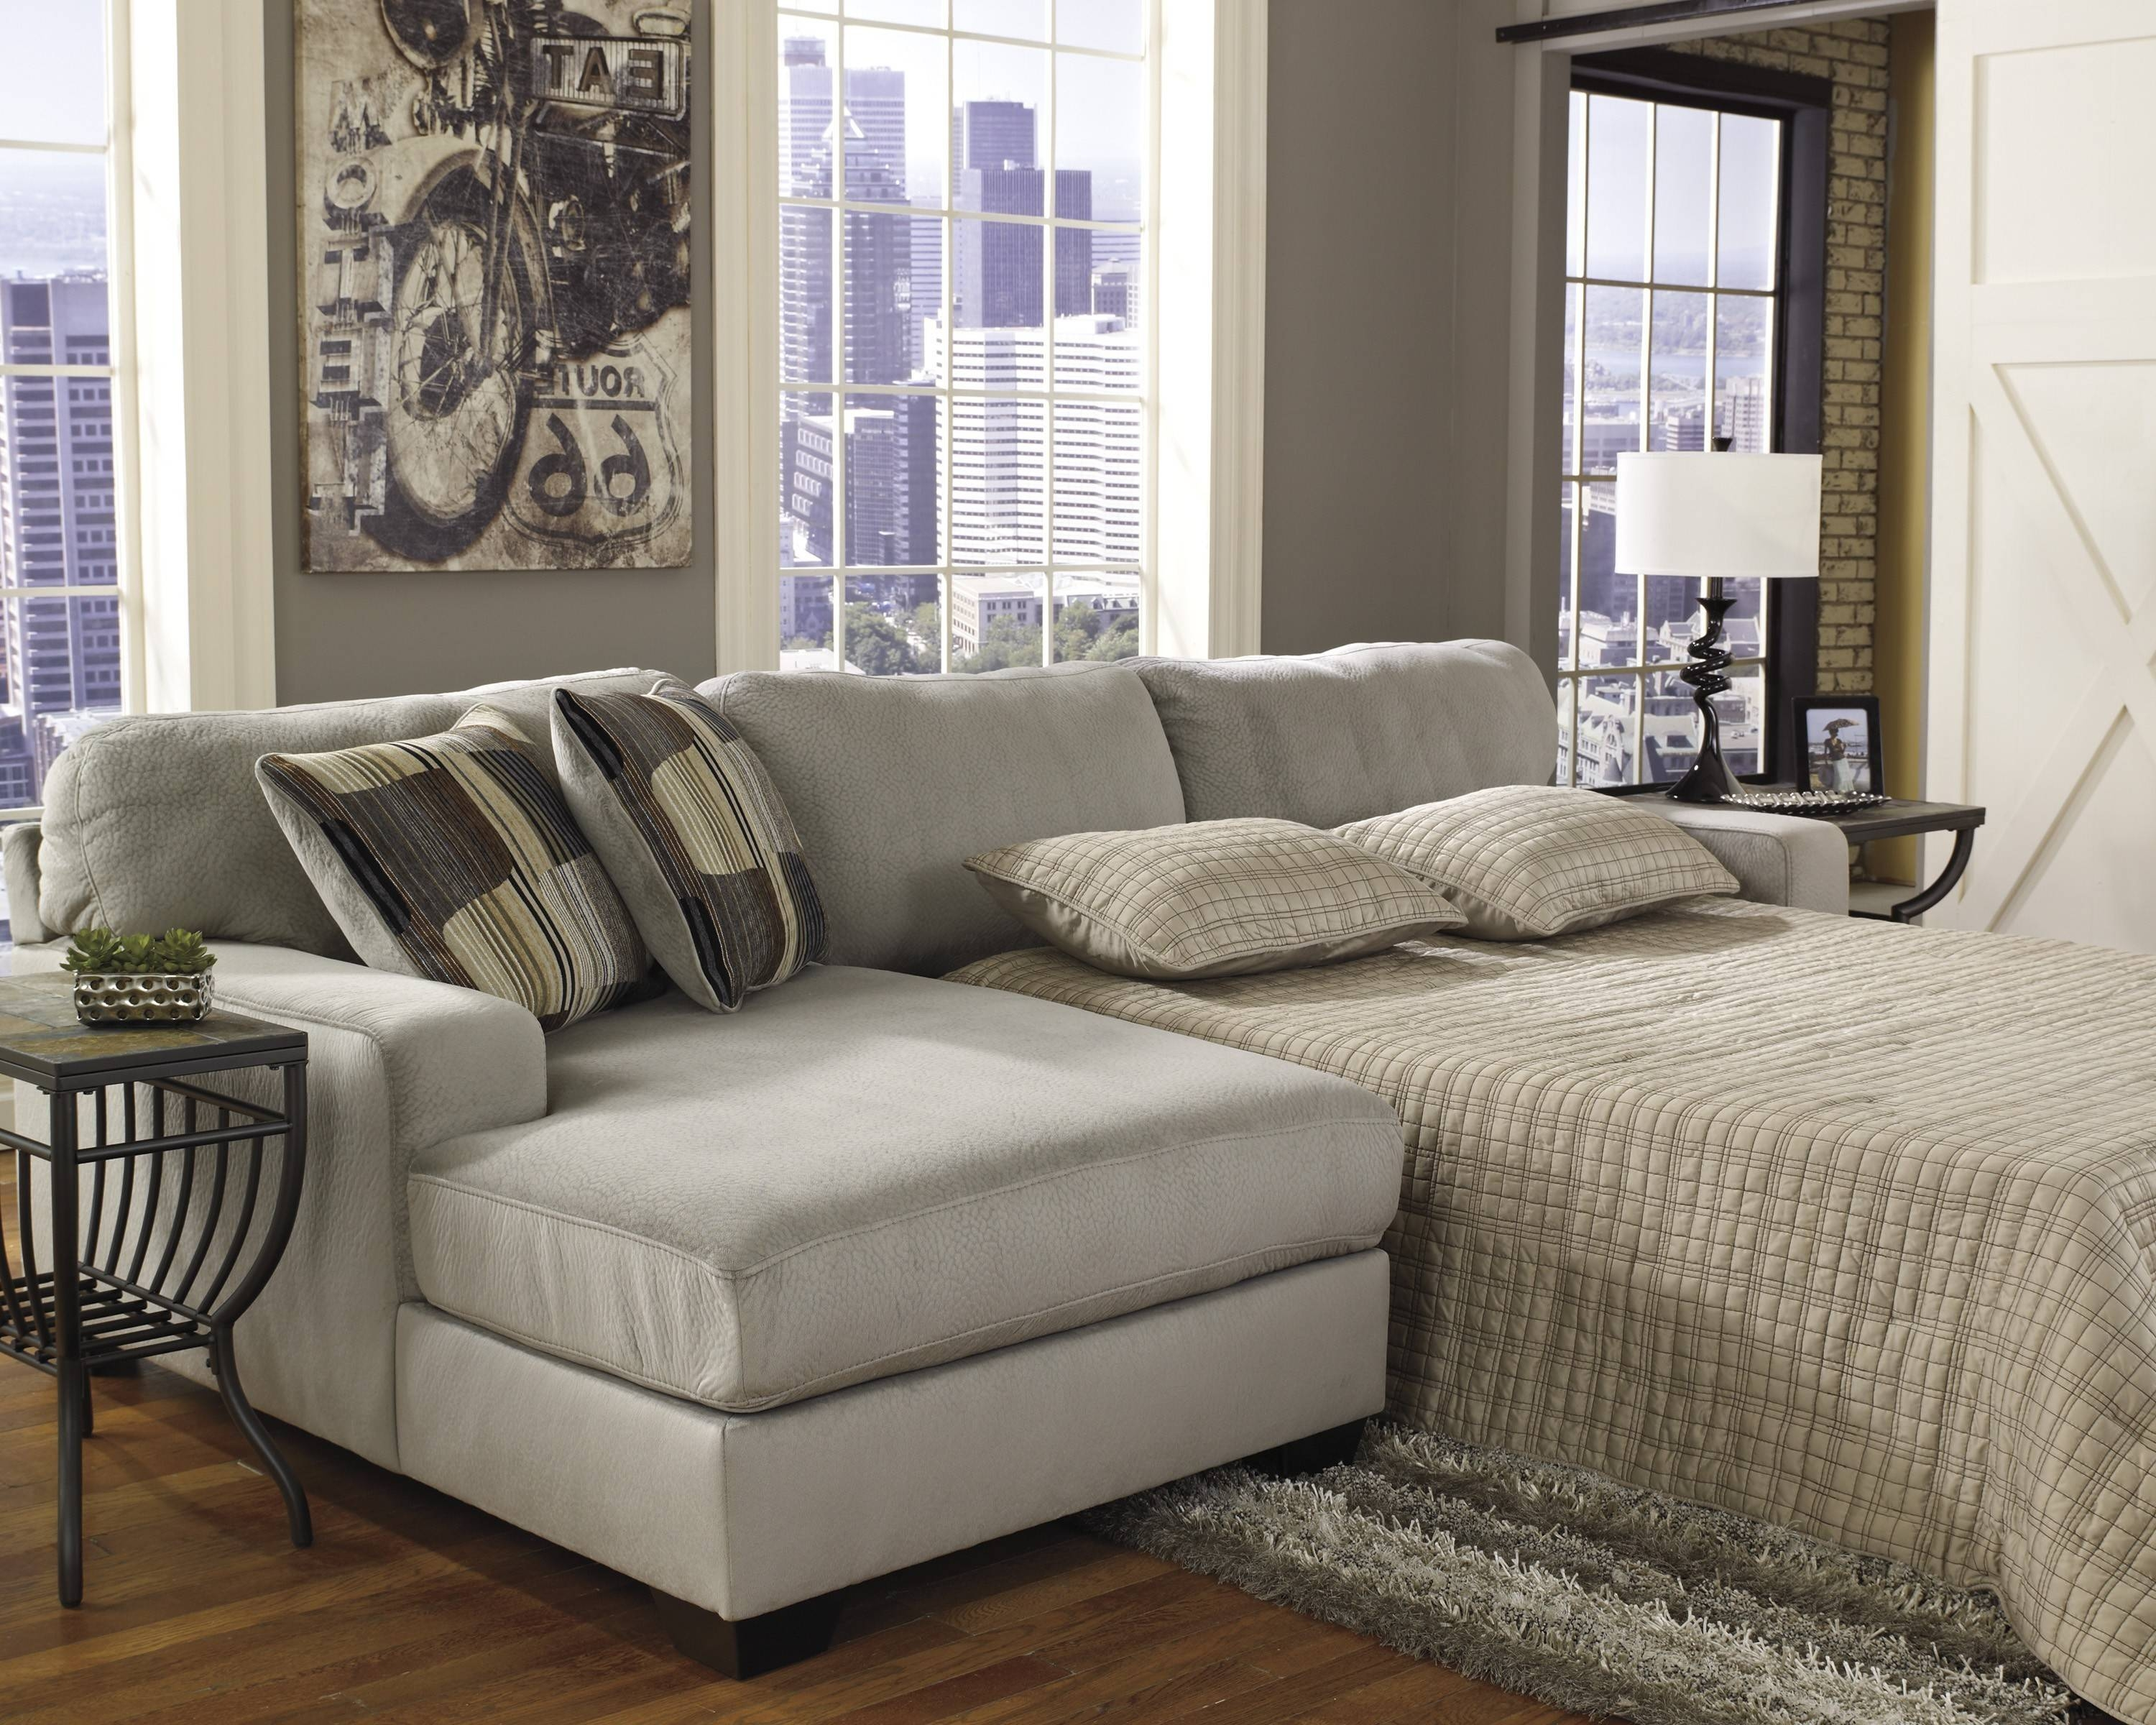 Interior: Luxury Oversized Sectional Sofa For Awesome Living Room intended for Oversized Sectional Sofa (Image 17 of 30)